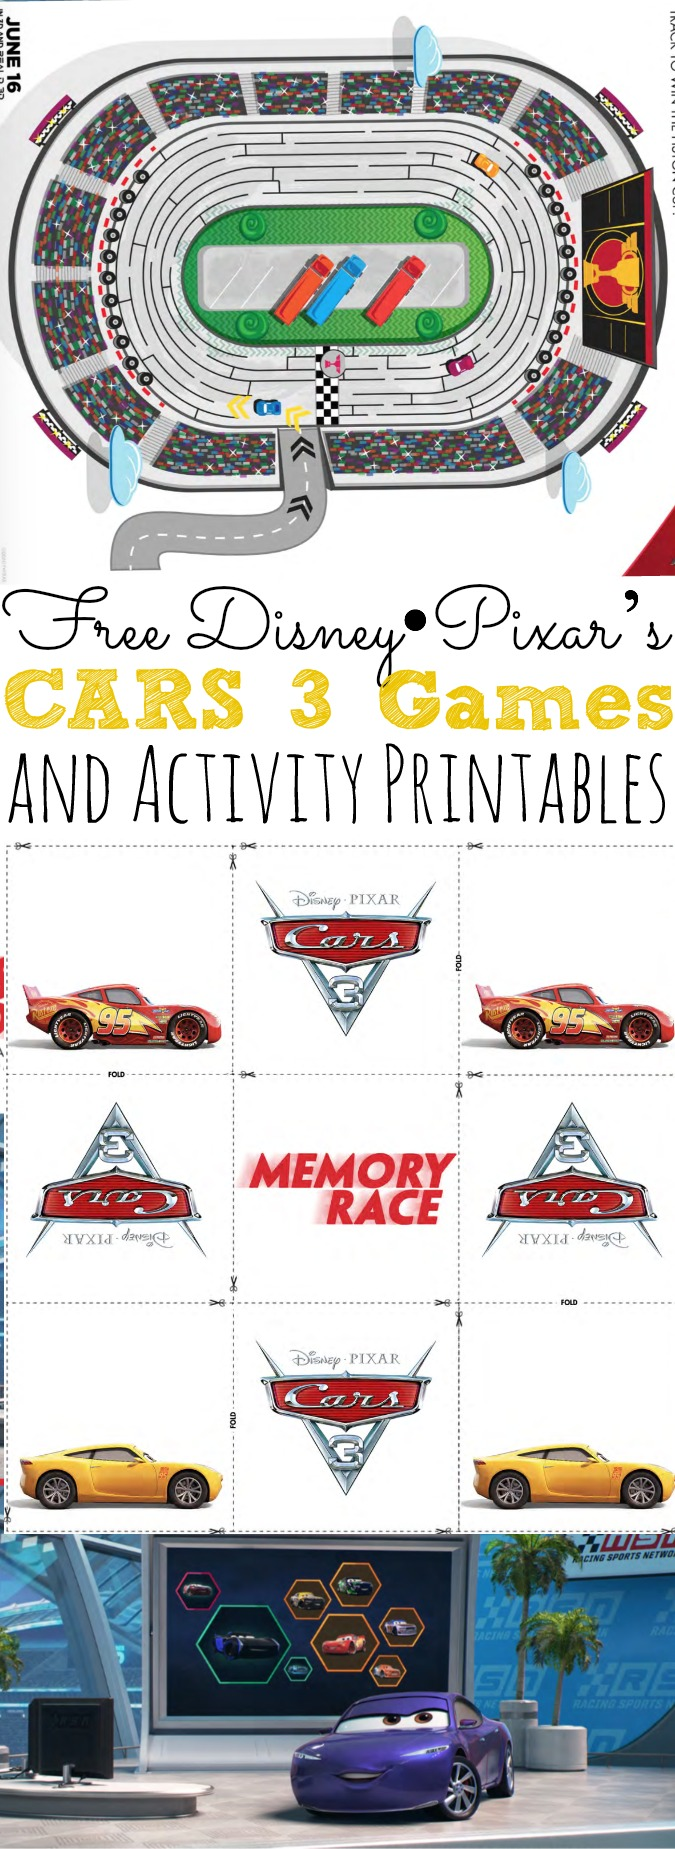 Free Disney•Pixar's CARS 3 Games and Activity Printables - abccreativelearning.com